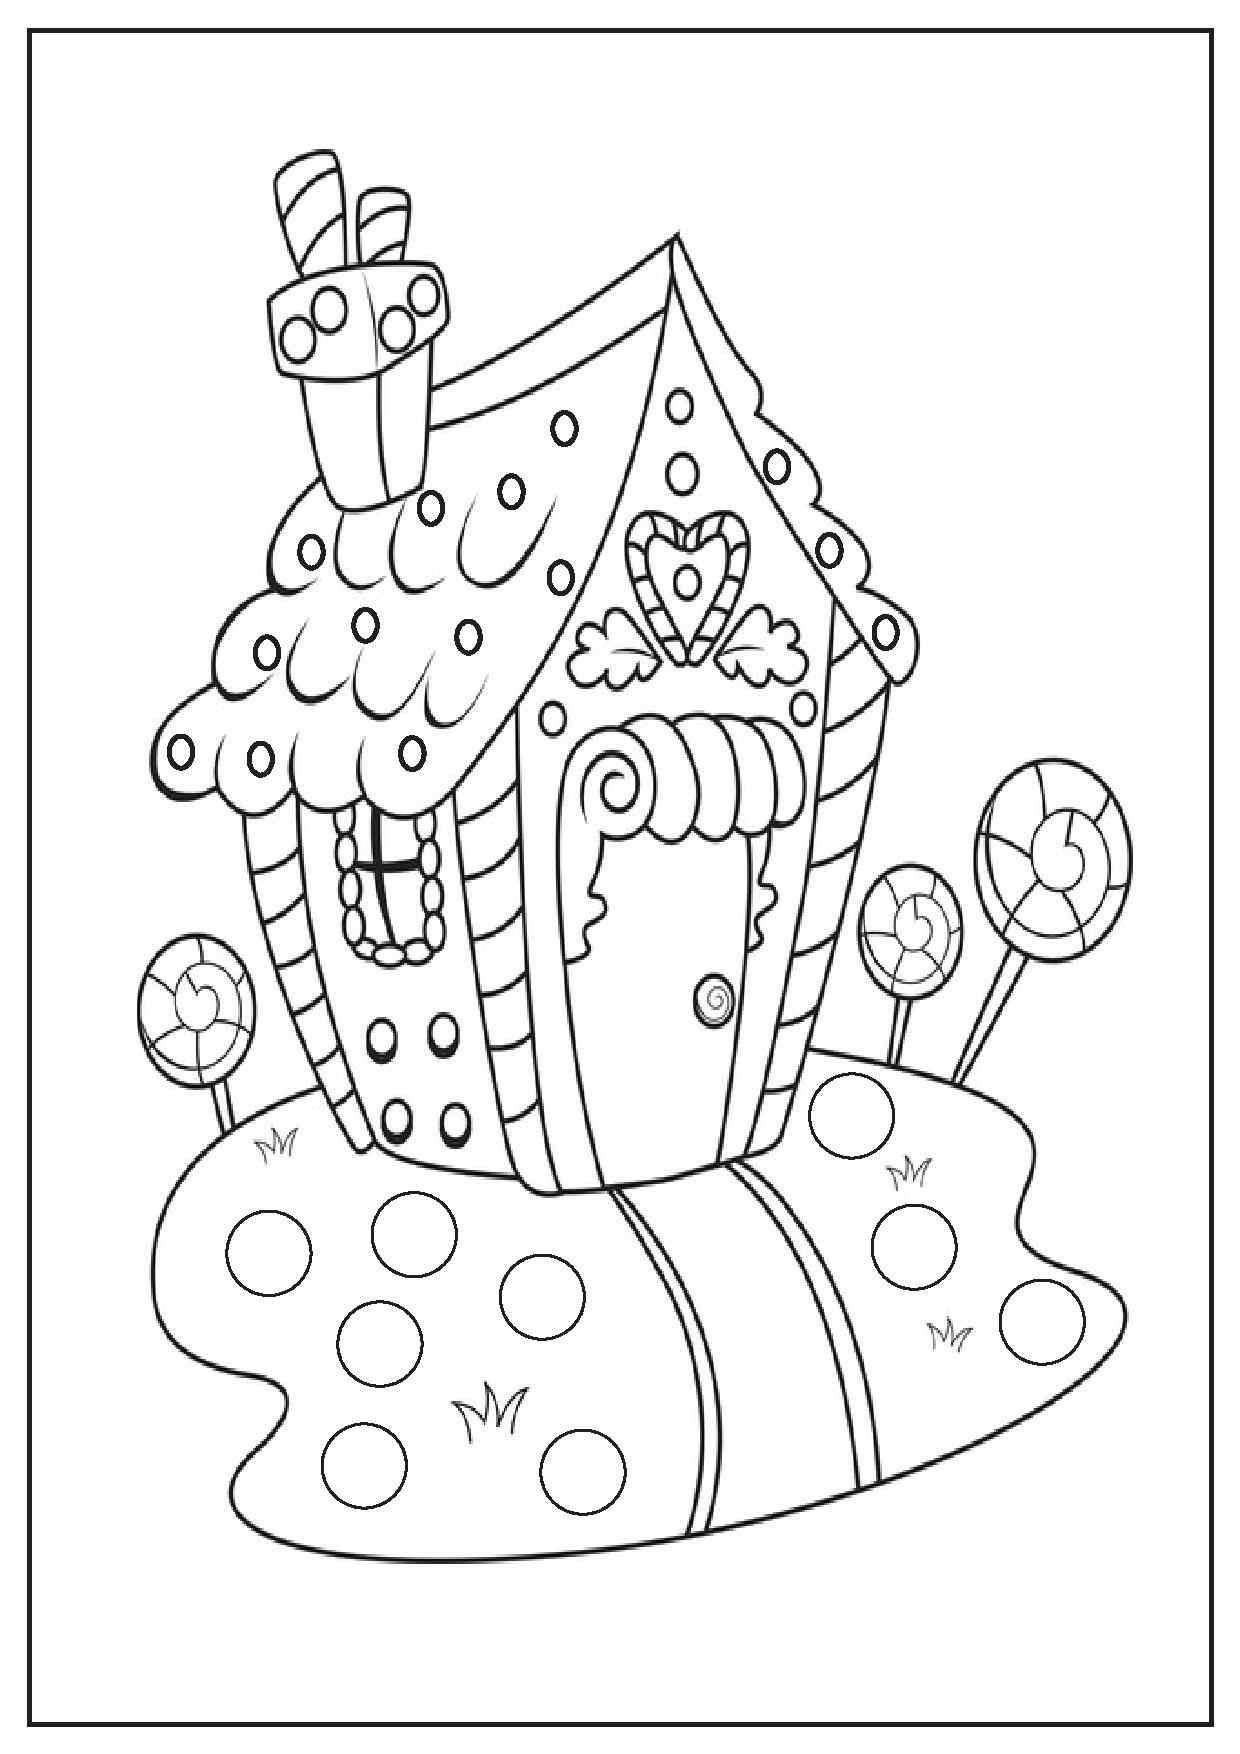 kindergarten coloring sheets Only Coloring Pages – Holiday Worksheets Free